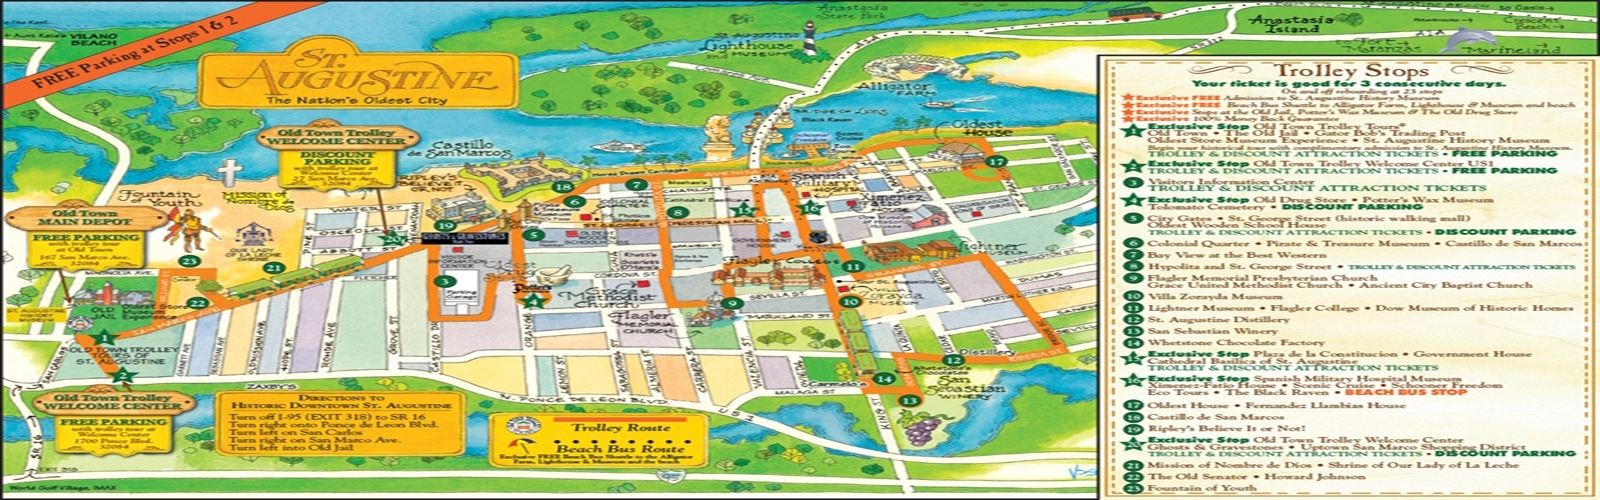 Saint Augustine Tourist Attractions | Haxball.co - St Augustine Florida Map Of Attractions